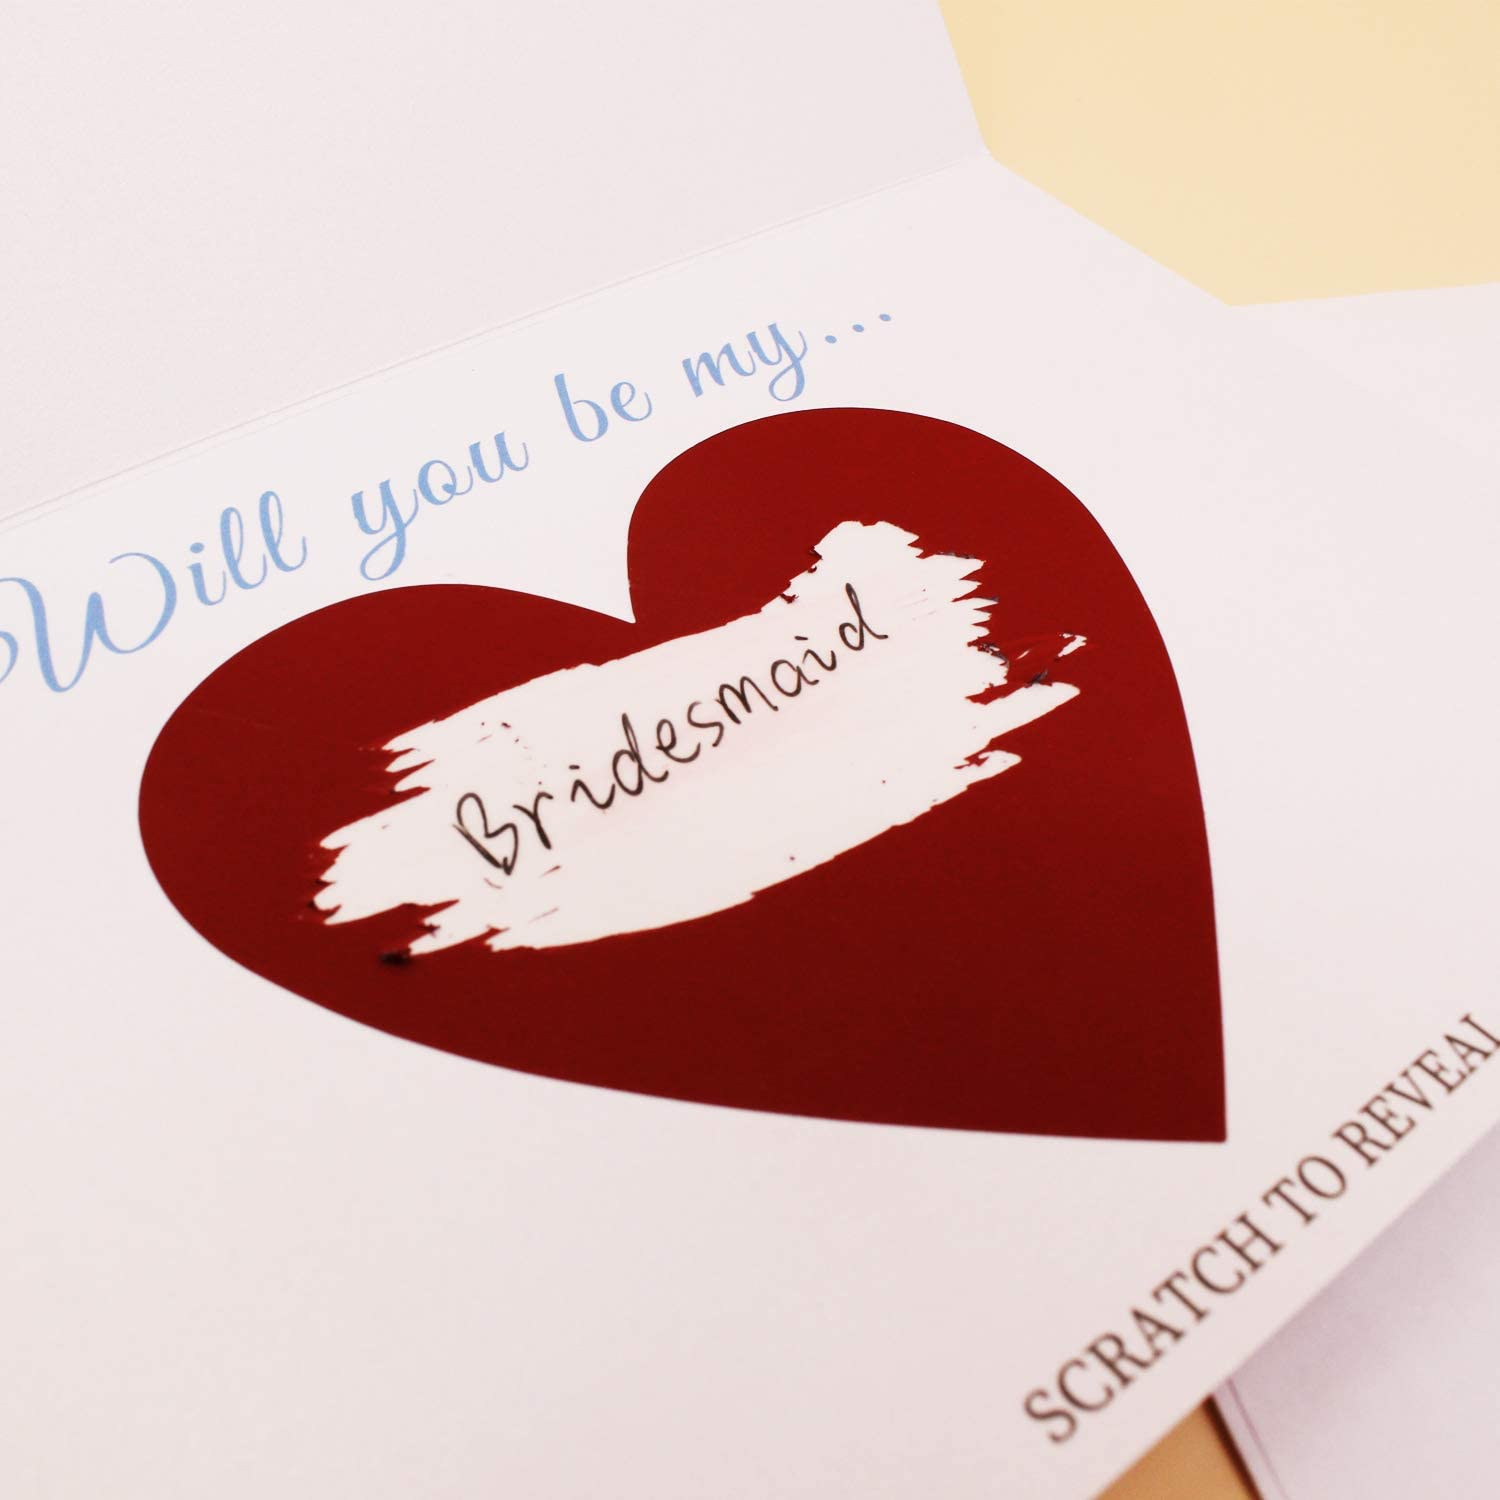 Will You Be My Bridesmaid Card Premium Bridesmaid Proposal Card Maid of honor Proposal Card Bridesmaid Maid of honor Gift Bridesmaid Scratch Off Card Set of 8